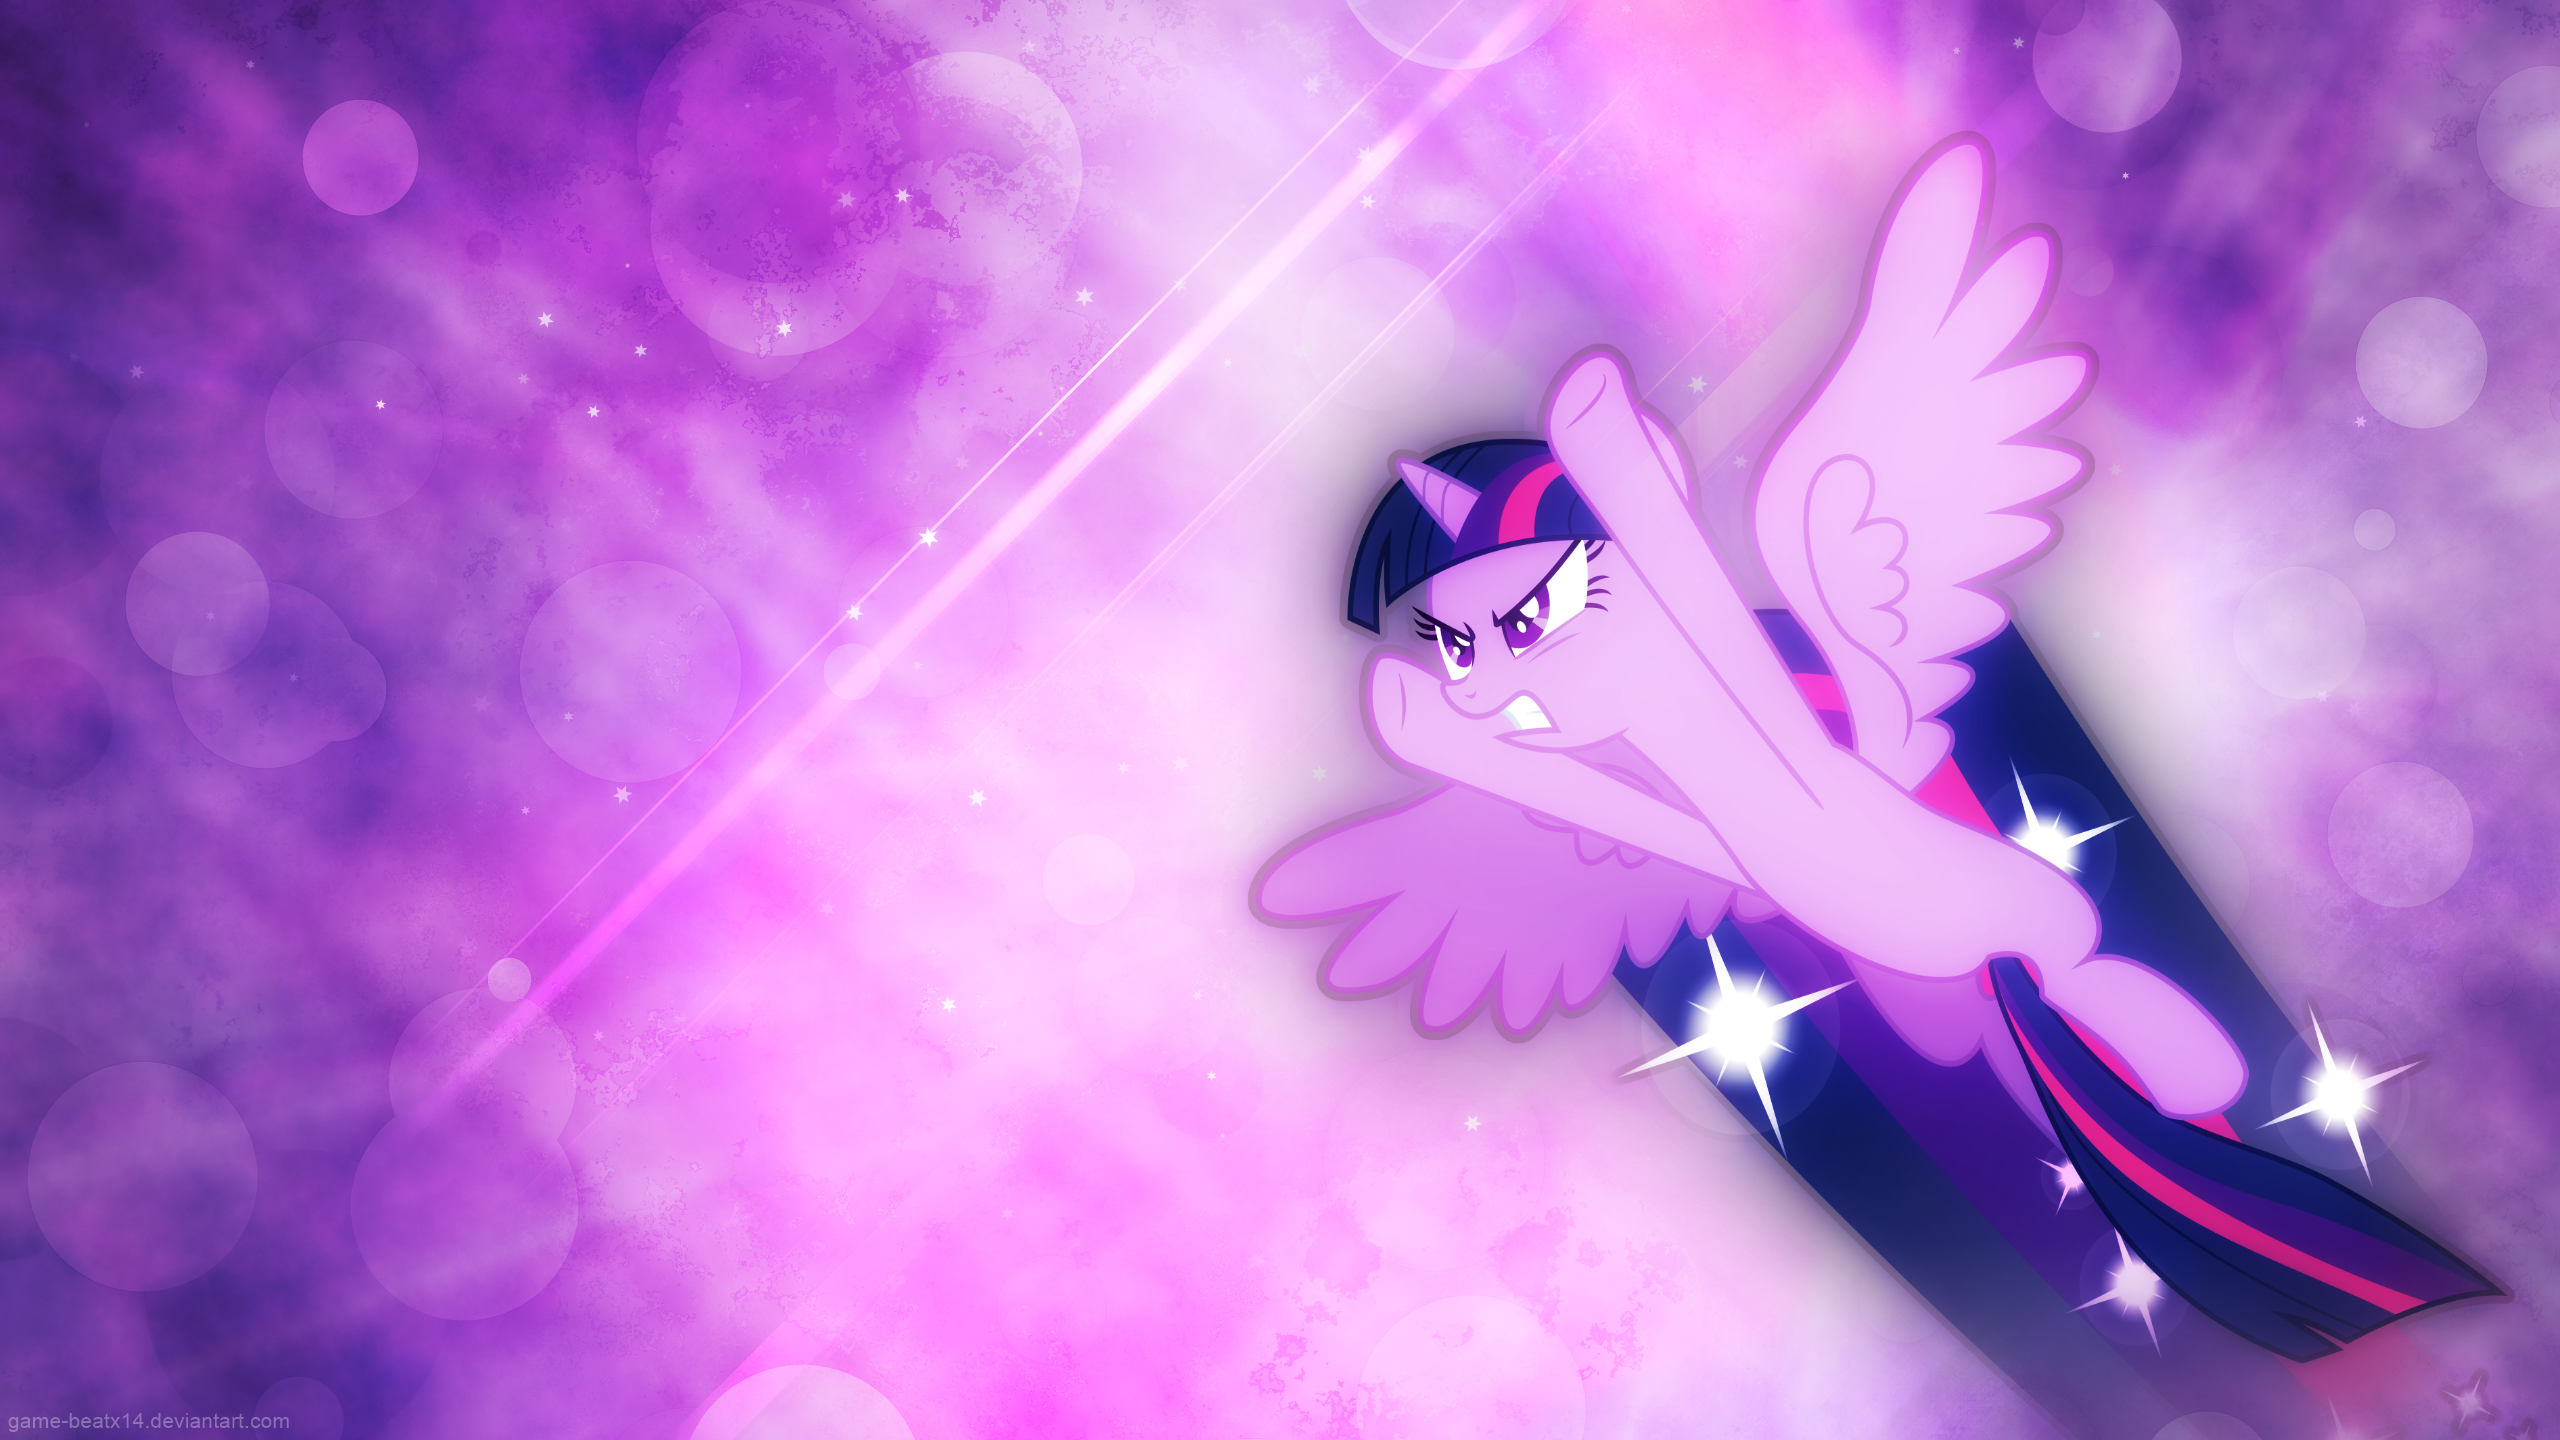 Flylight Sparkle by CaliAzian and Game-BeatX14